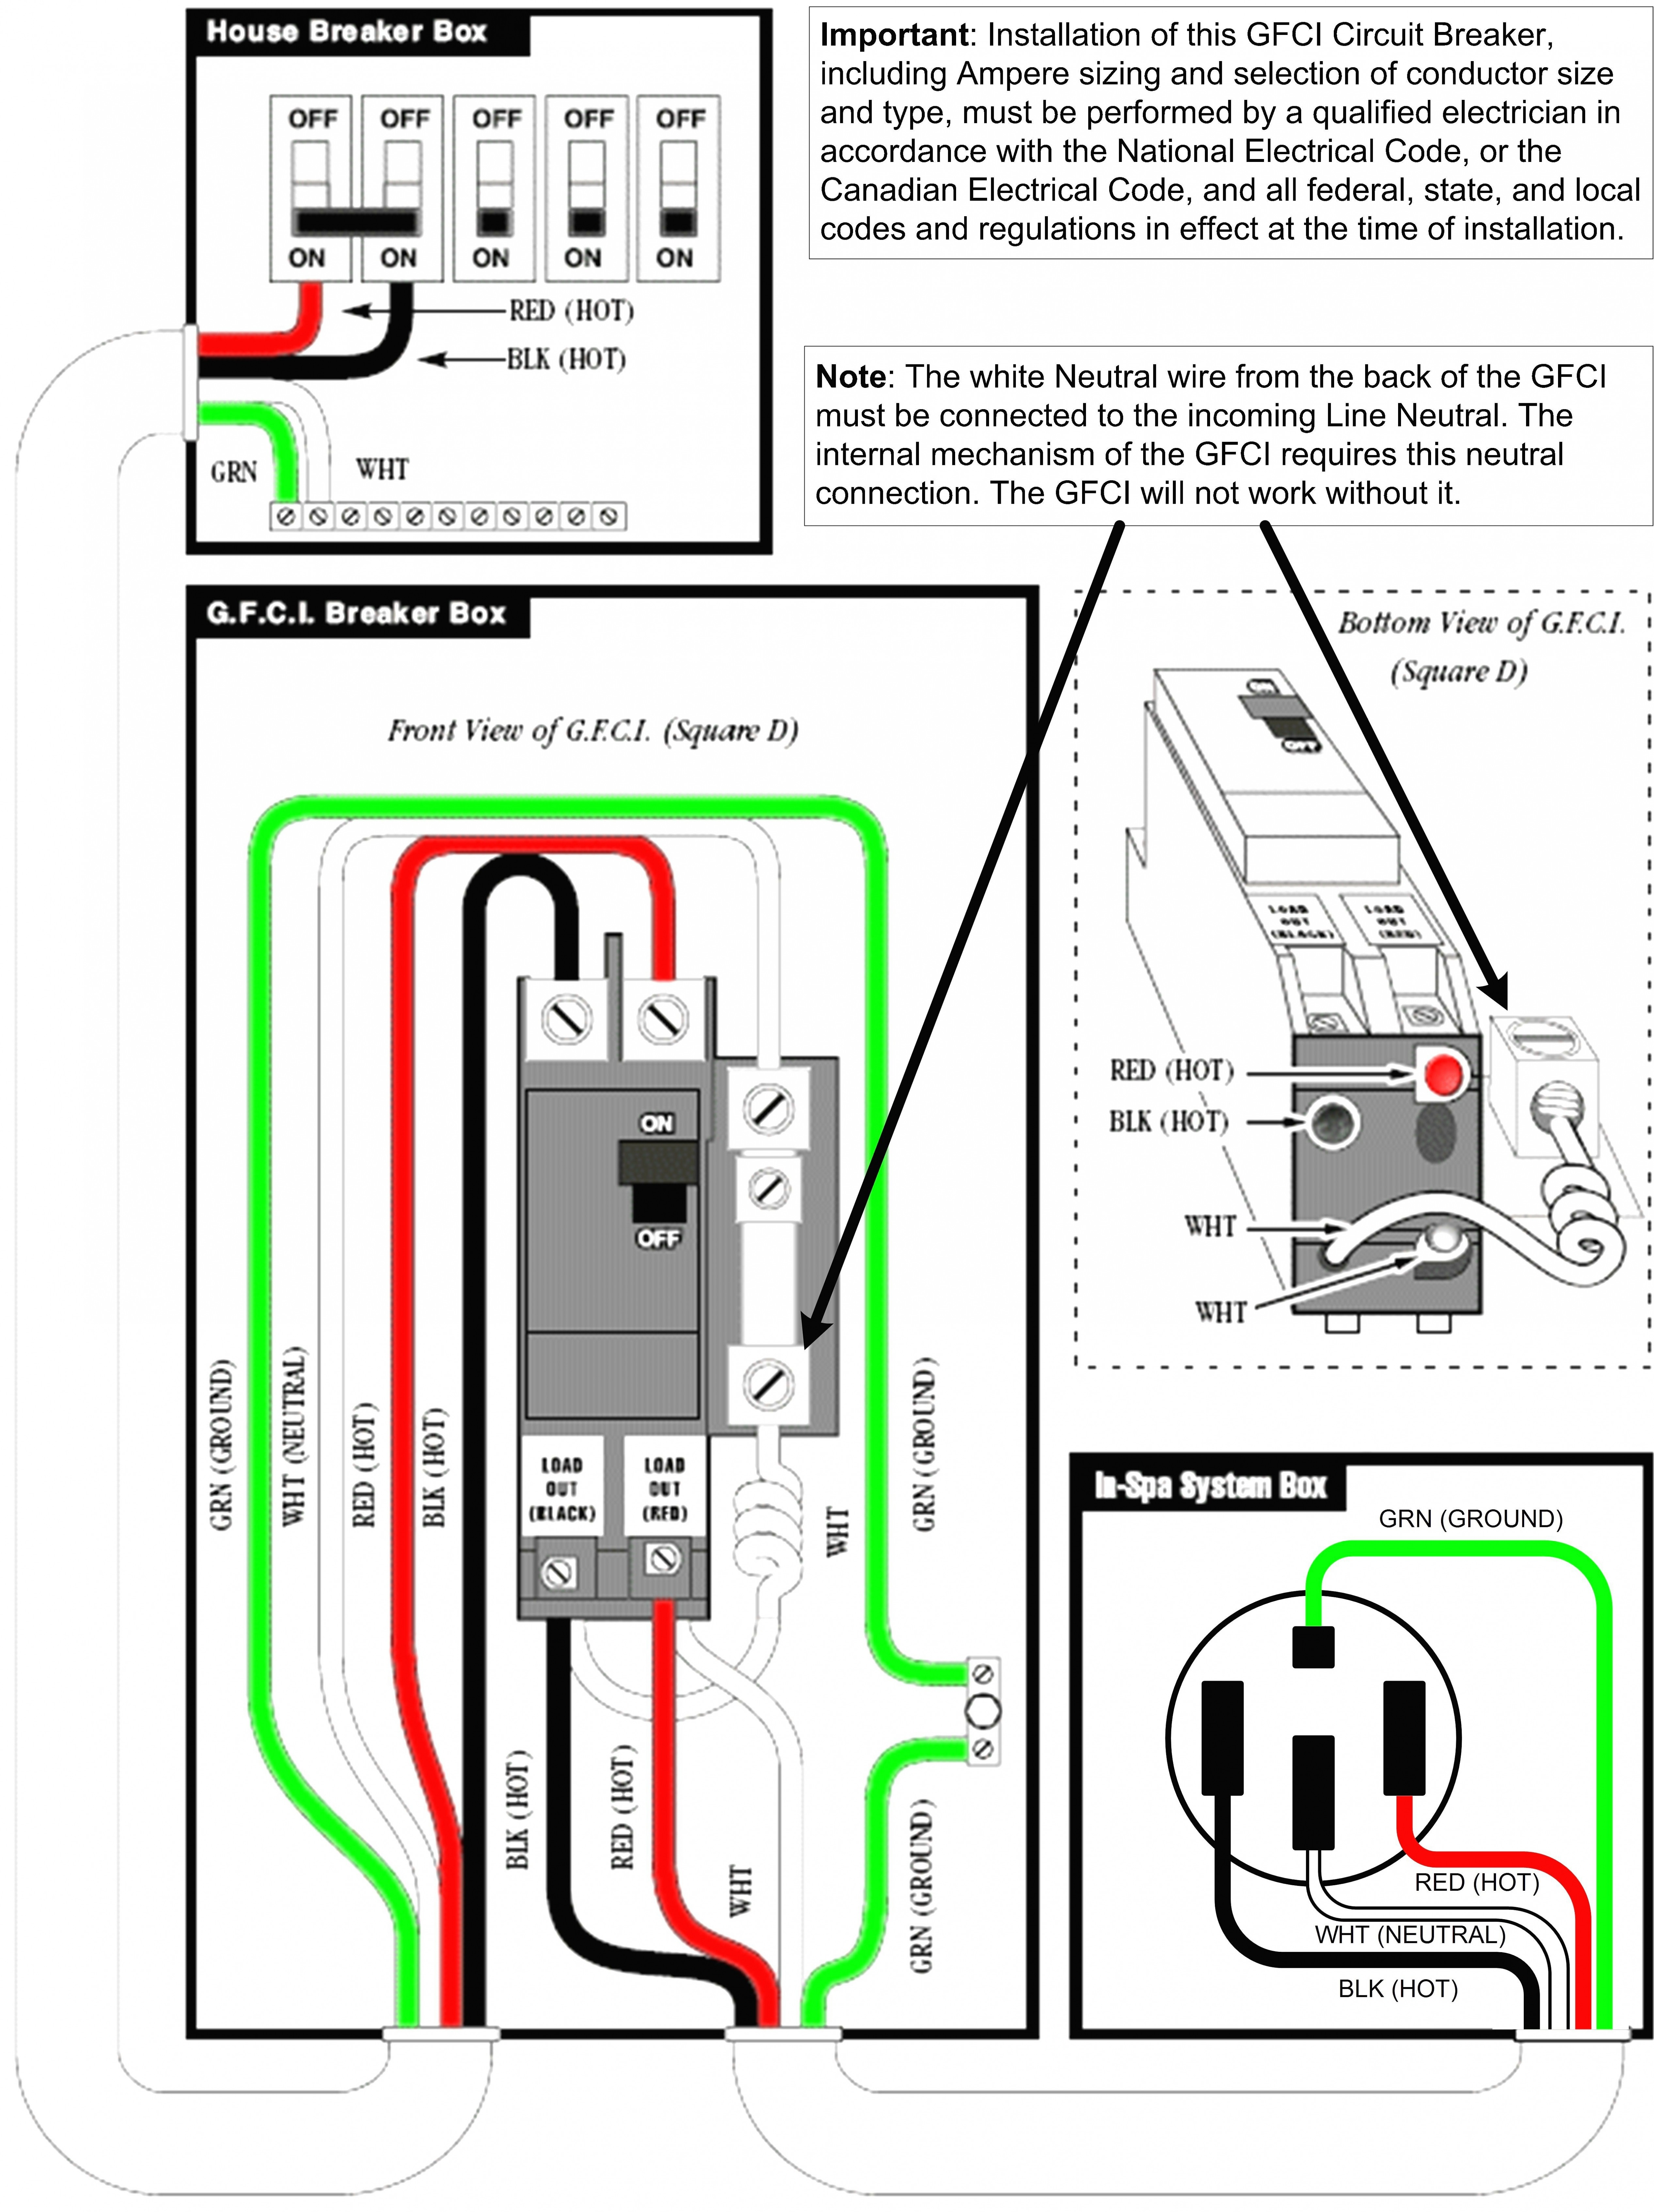 220 Breaker Box Wiring Diagram Unique 220 Volt Wiring Diagram Collection Koreasee for Electrical